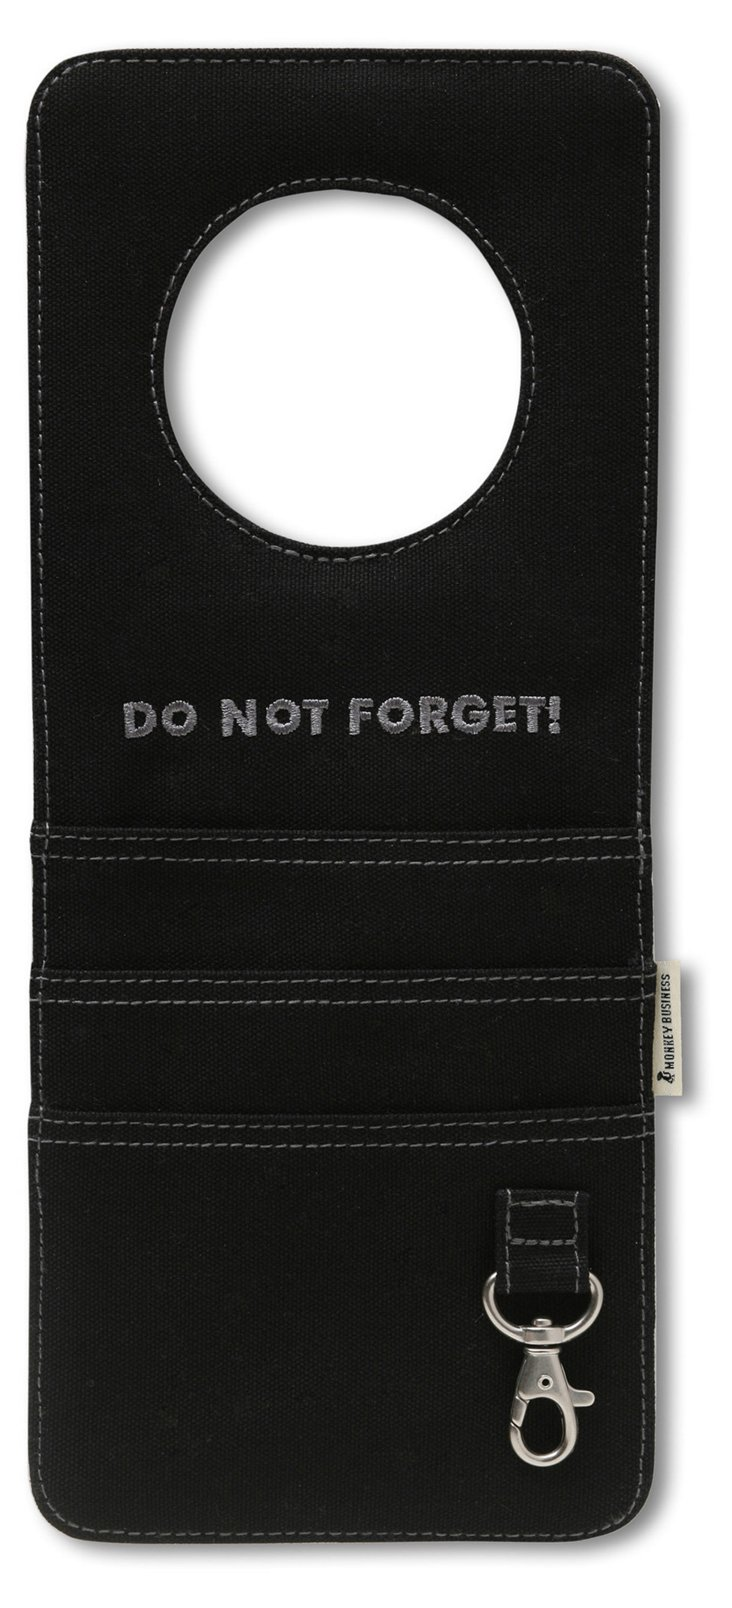 Door Organizer, Black